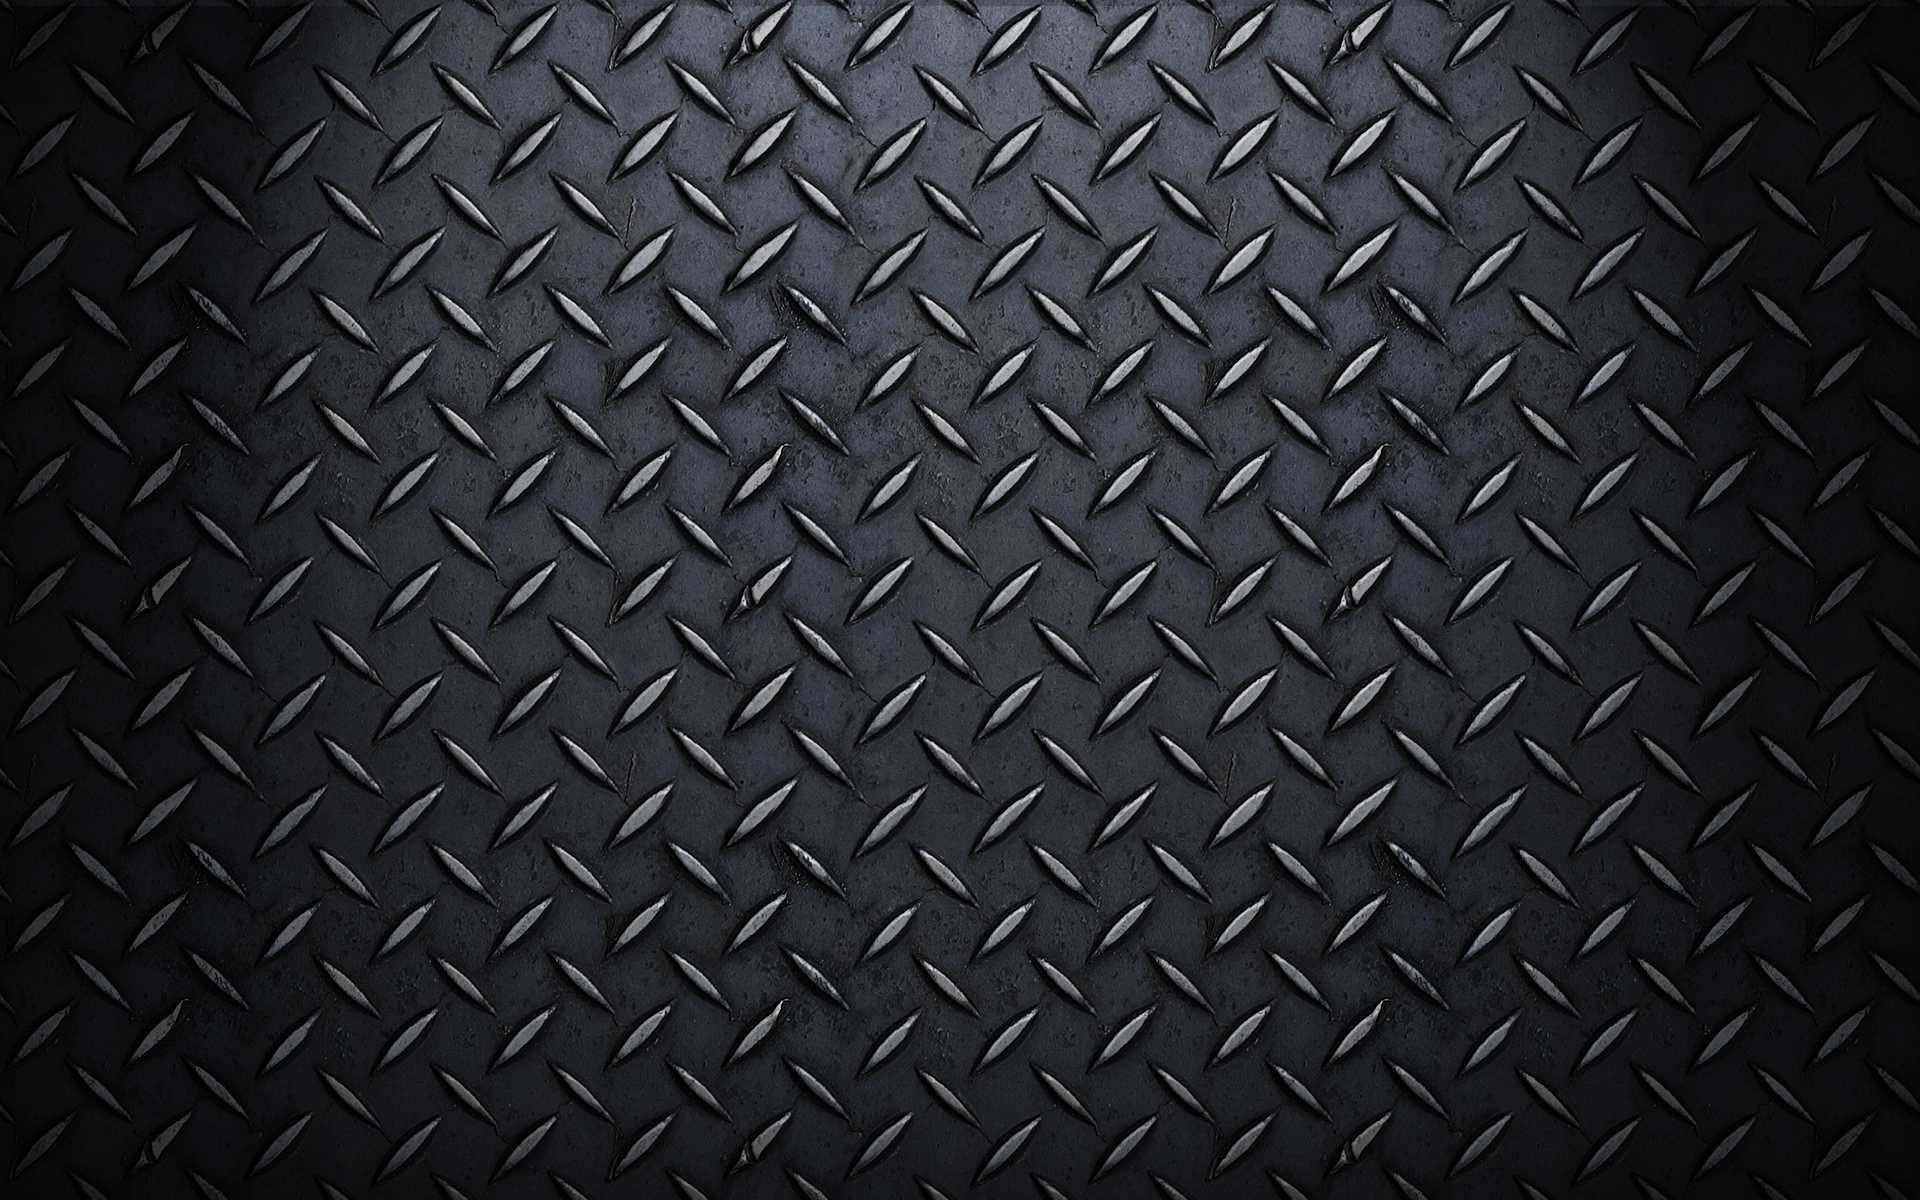 Dark-Diamond-Plate1.jpg